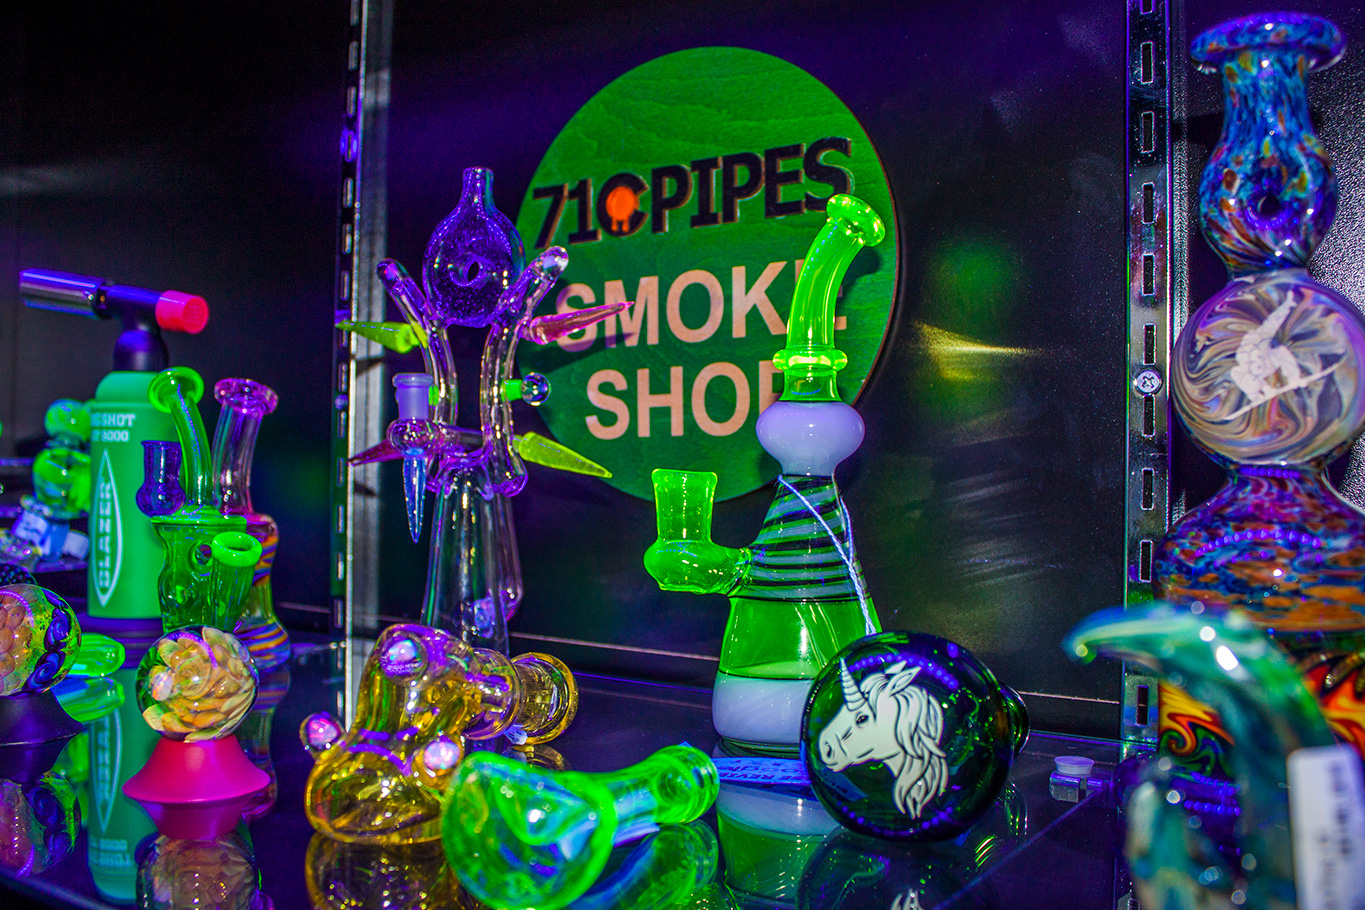 glow-in-the-dark-bongs.jpg